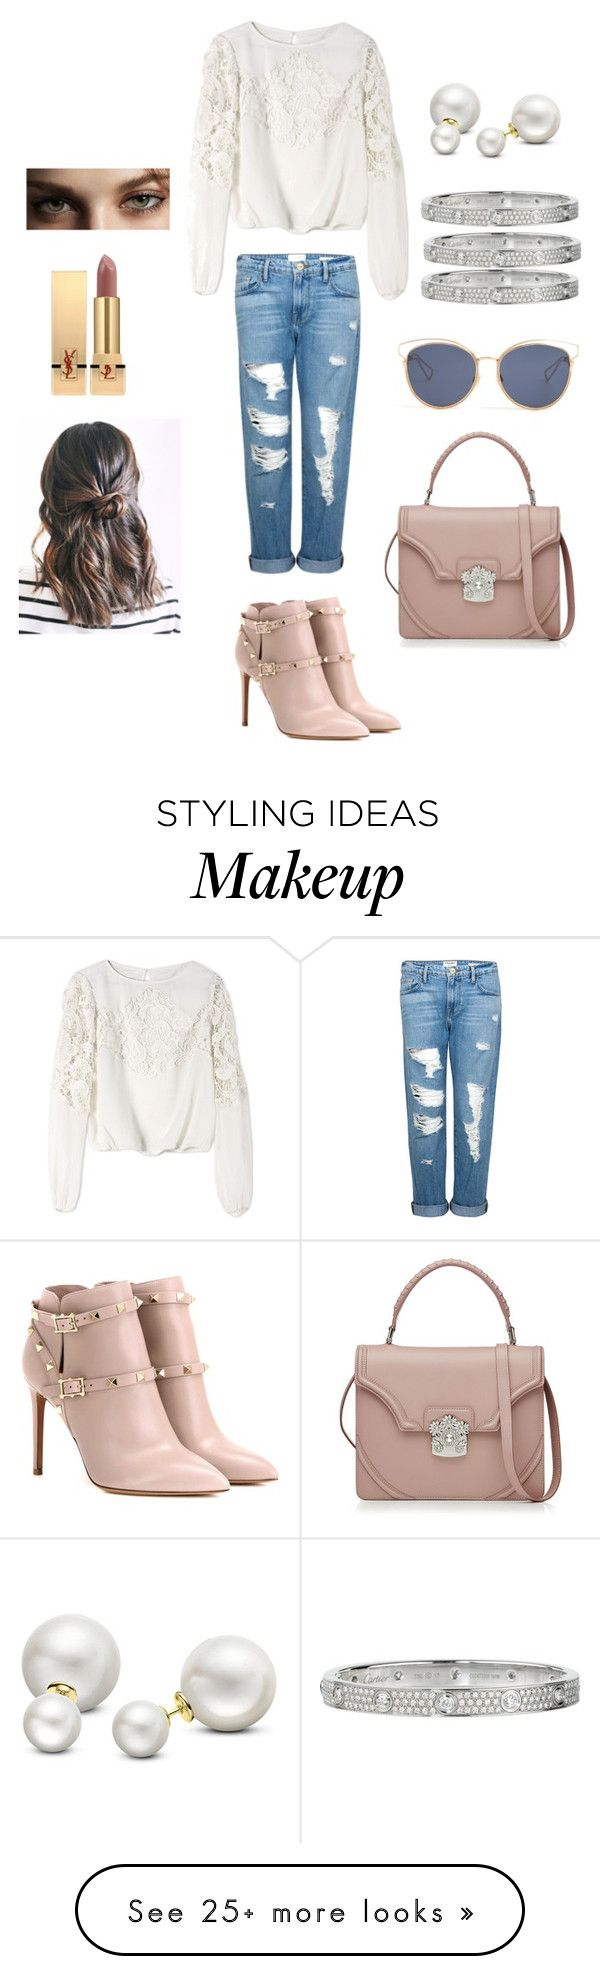 """""""LA"""" by ea-l026 on Polyvore featuring Valentino, Alice + Olivia, Frame Denim, Allurez, Cartier, Christian Dior, Alexander McQueen, Burberry and Yves Saint Laurent"""